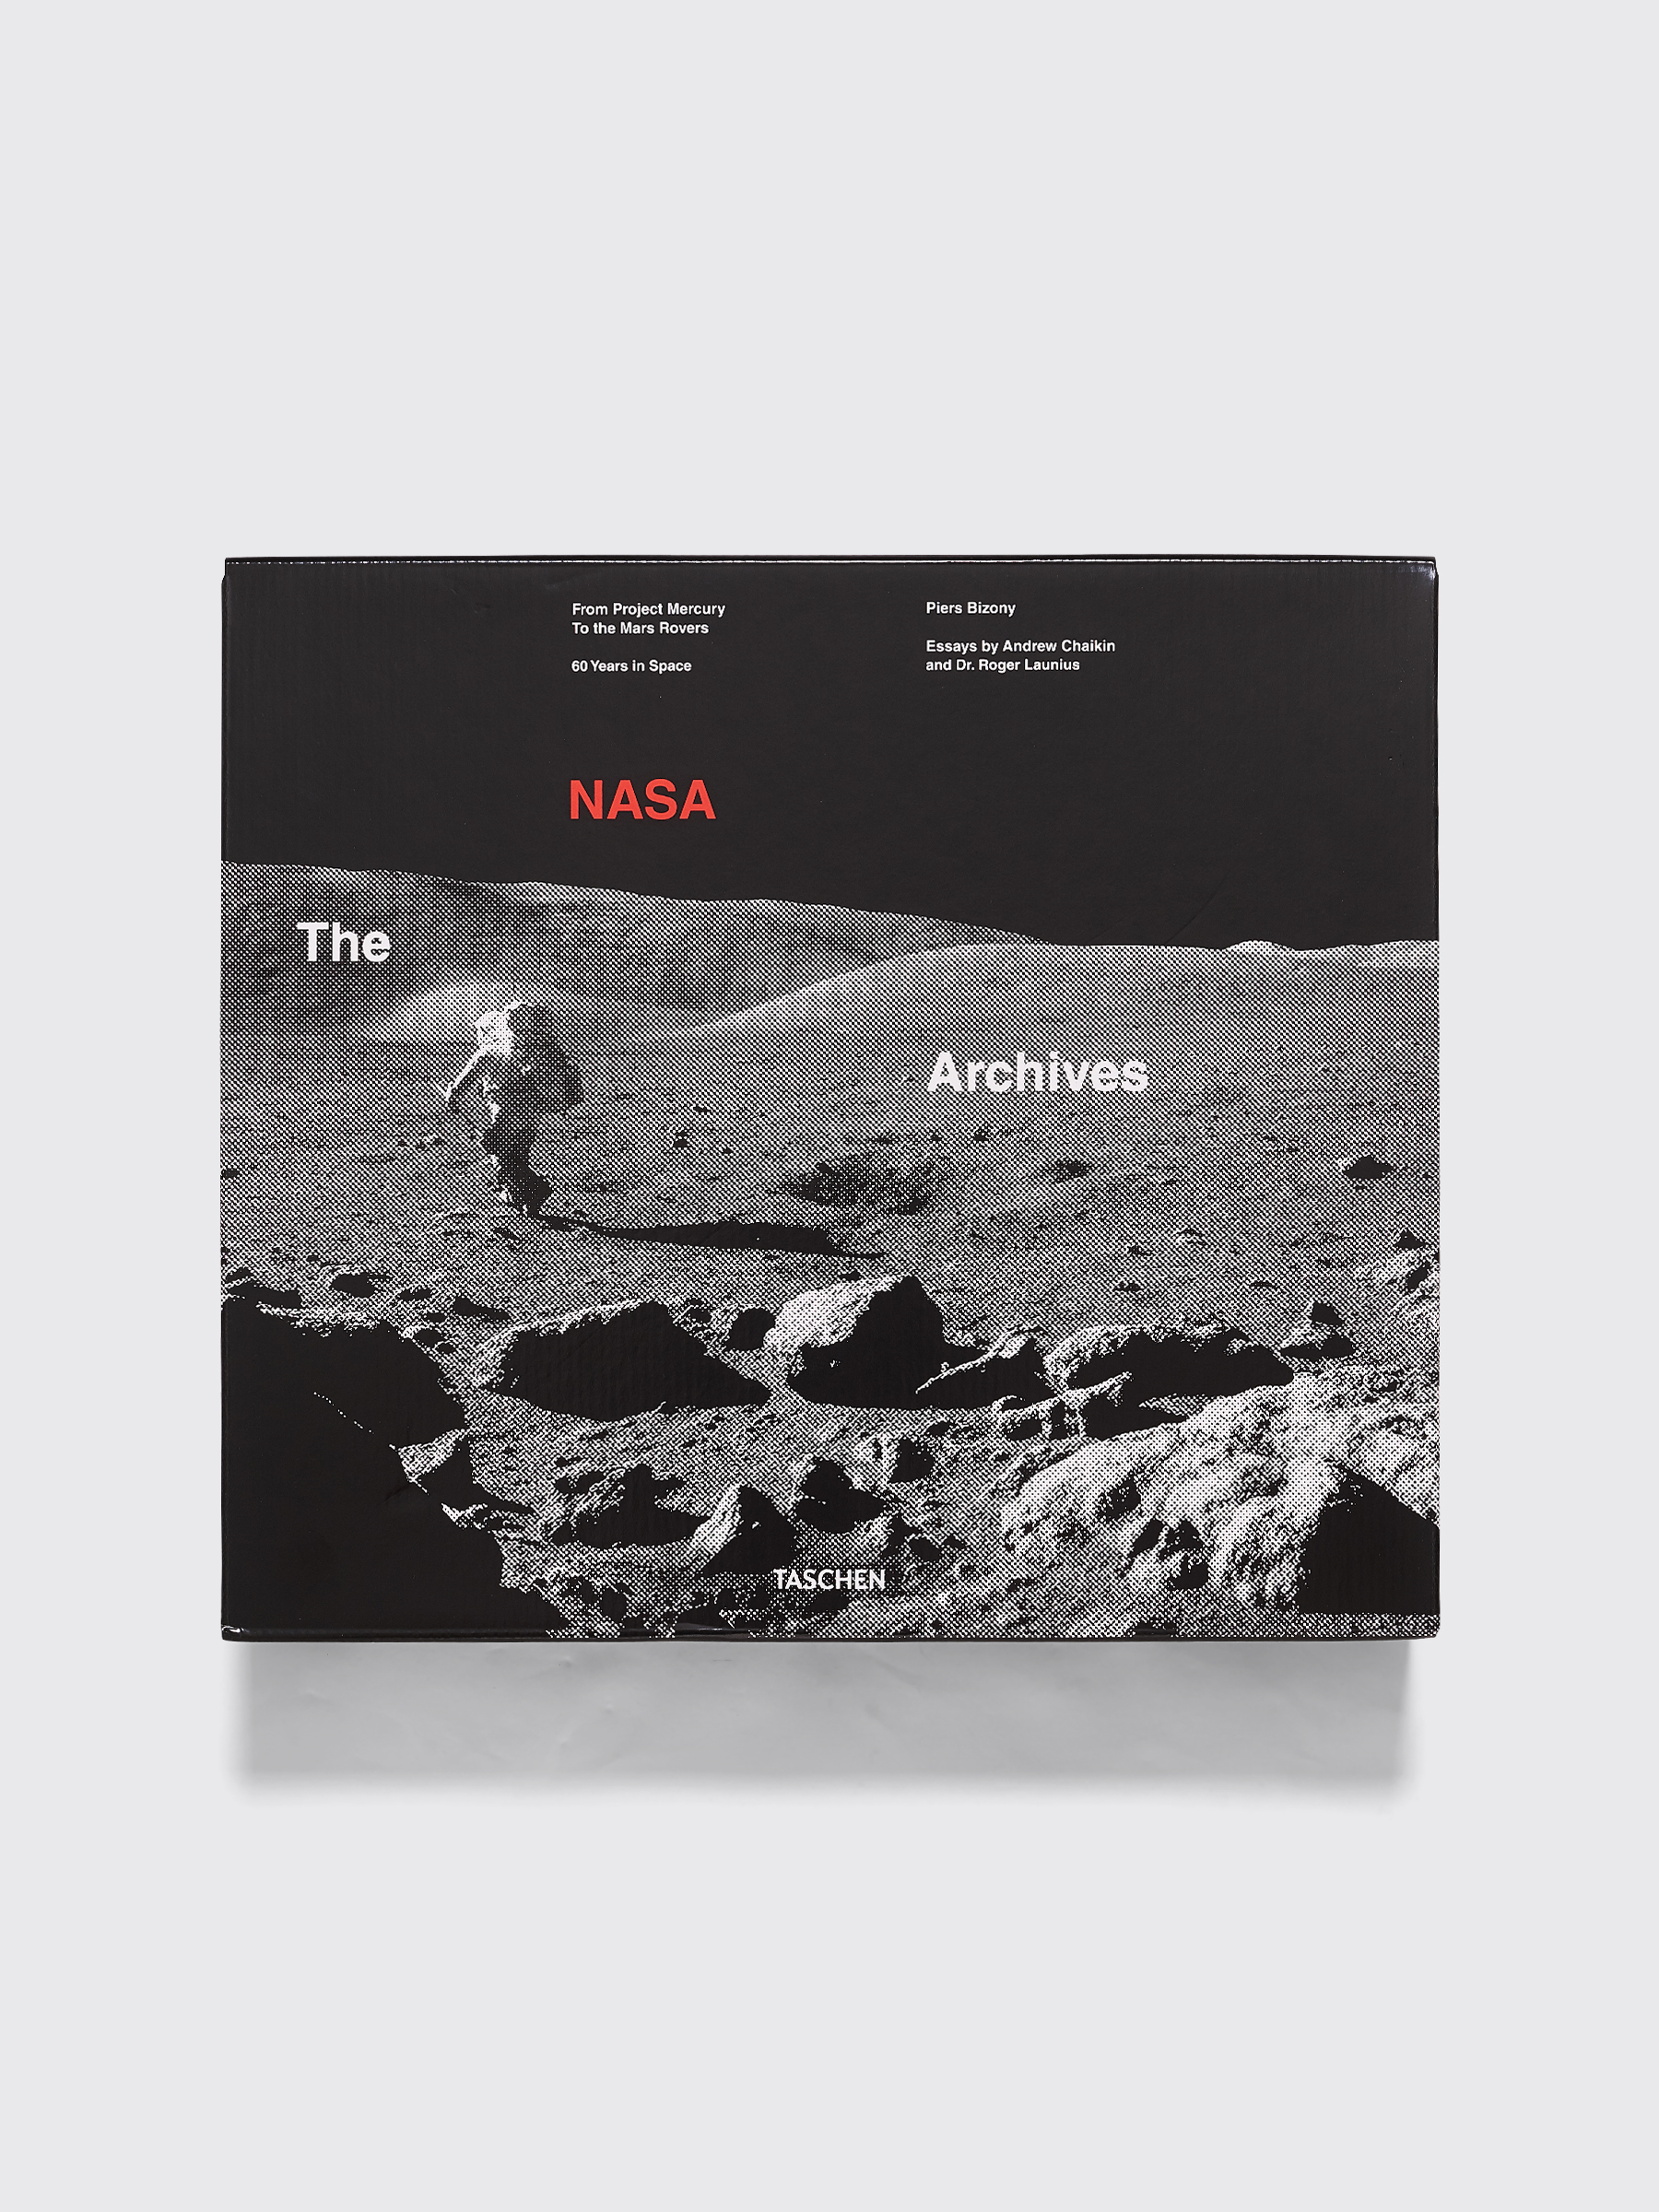 ca40a52302e44 Très Bien - Taschen The NASA Archives  60 Years in Space